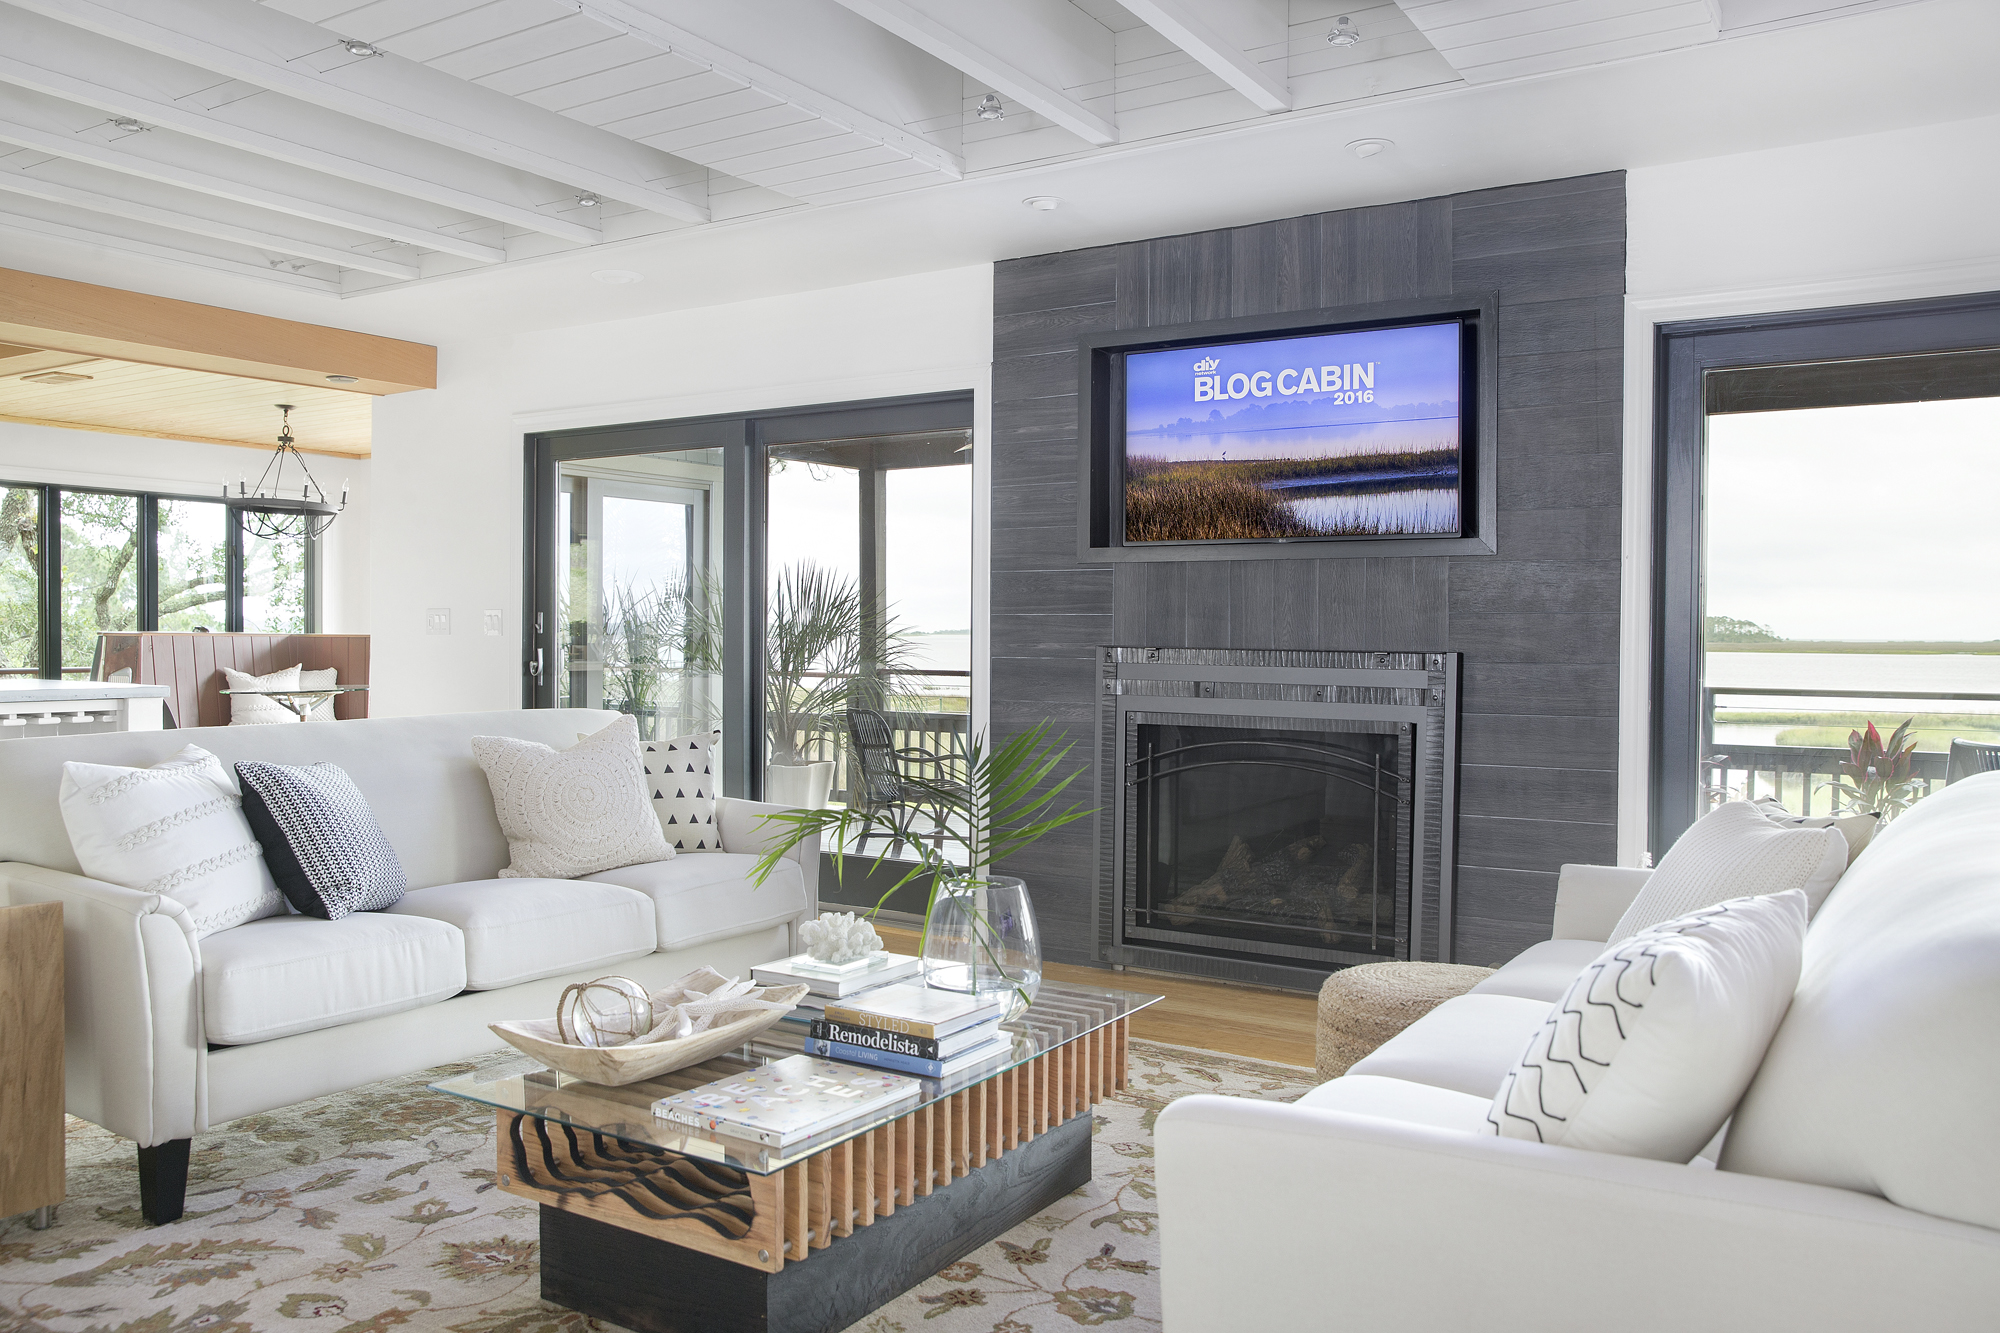 Exposed joists and V-groove ceiling boards in linen white ground the living room in coastal cottage style, while the gray porcelain fireplace surround offers a visual focal point.